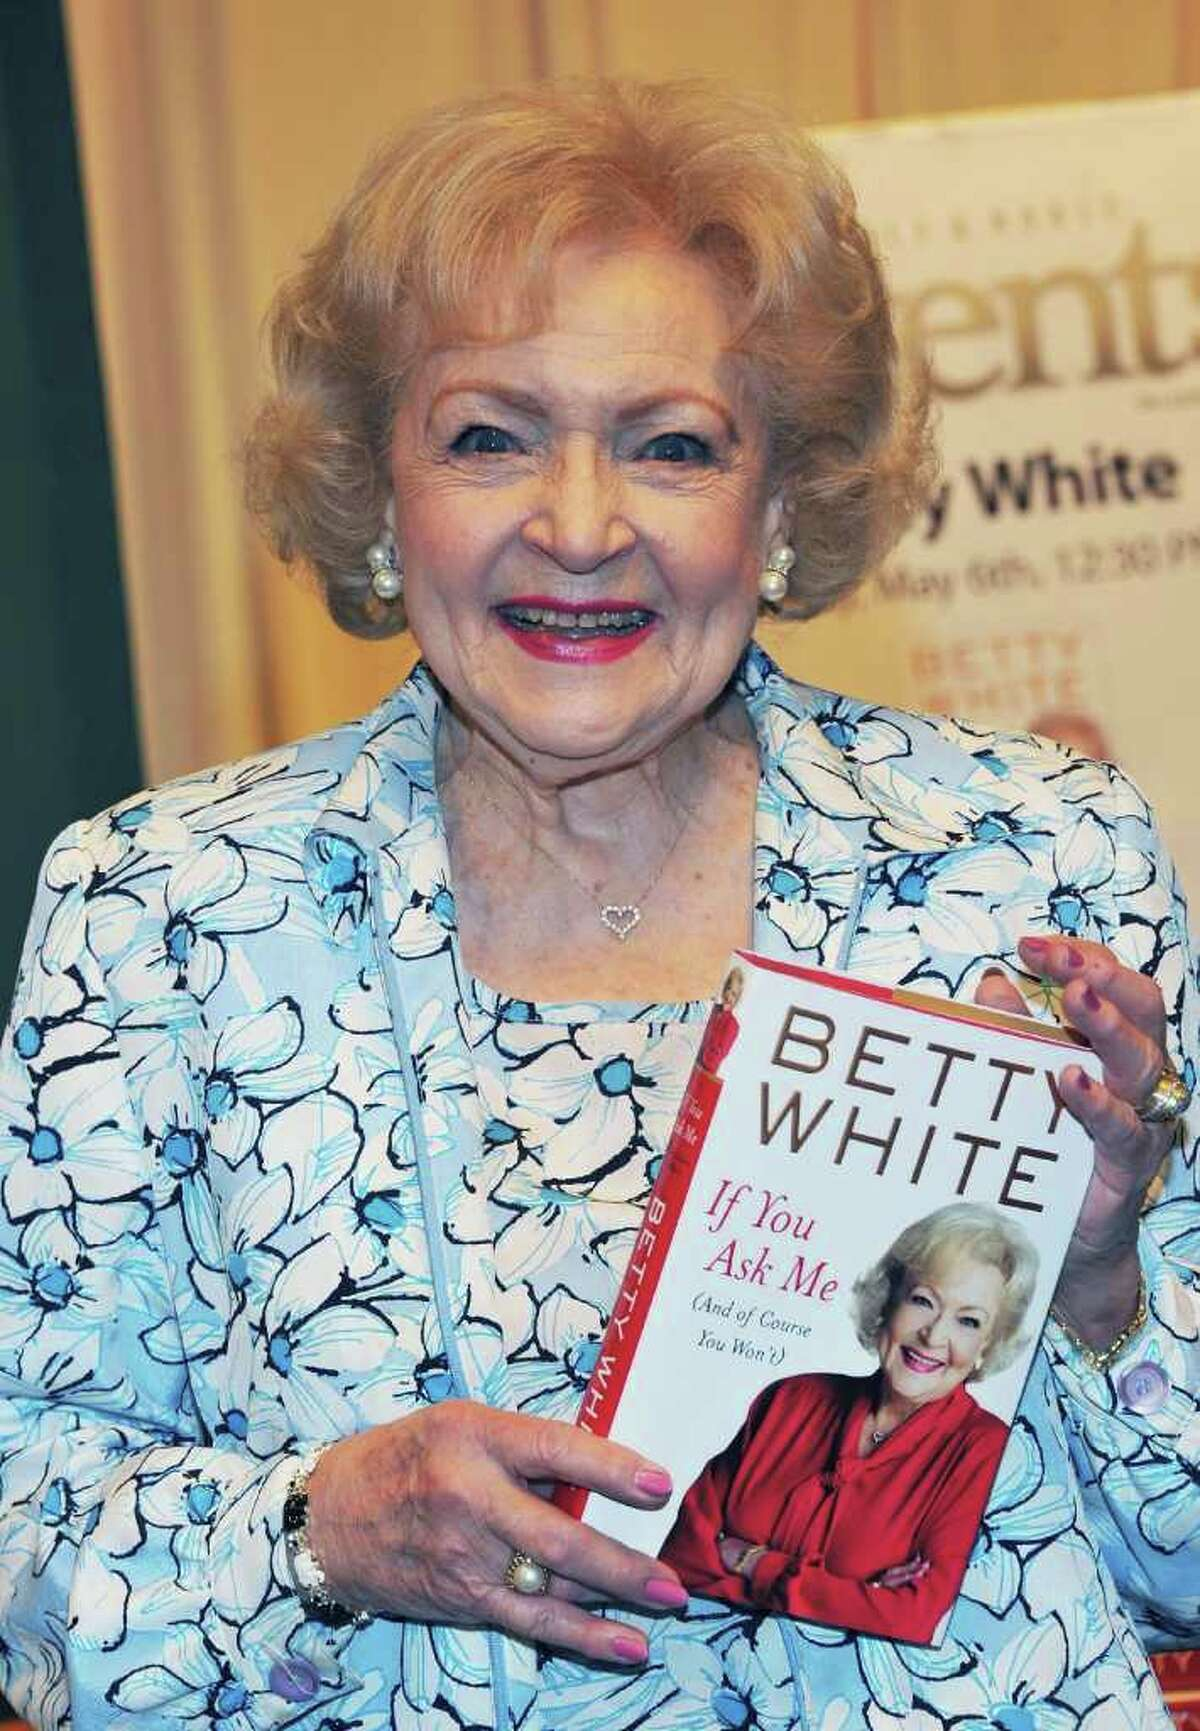 """NEW YORK, NY - MAY 06: Actress Betty White signs copies of """"If You Ask Me (And Of Course You Won't)"""" at Barnes & Noble, 5th Avenue on May 6, 2011 in New York City. (Photo by Slaven Vlasic/Getty Images) *** Local Caption *** Betty White;"""